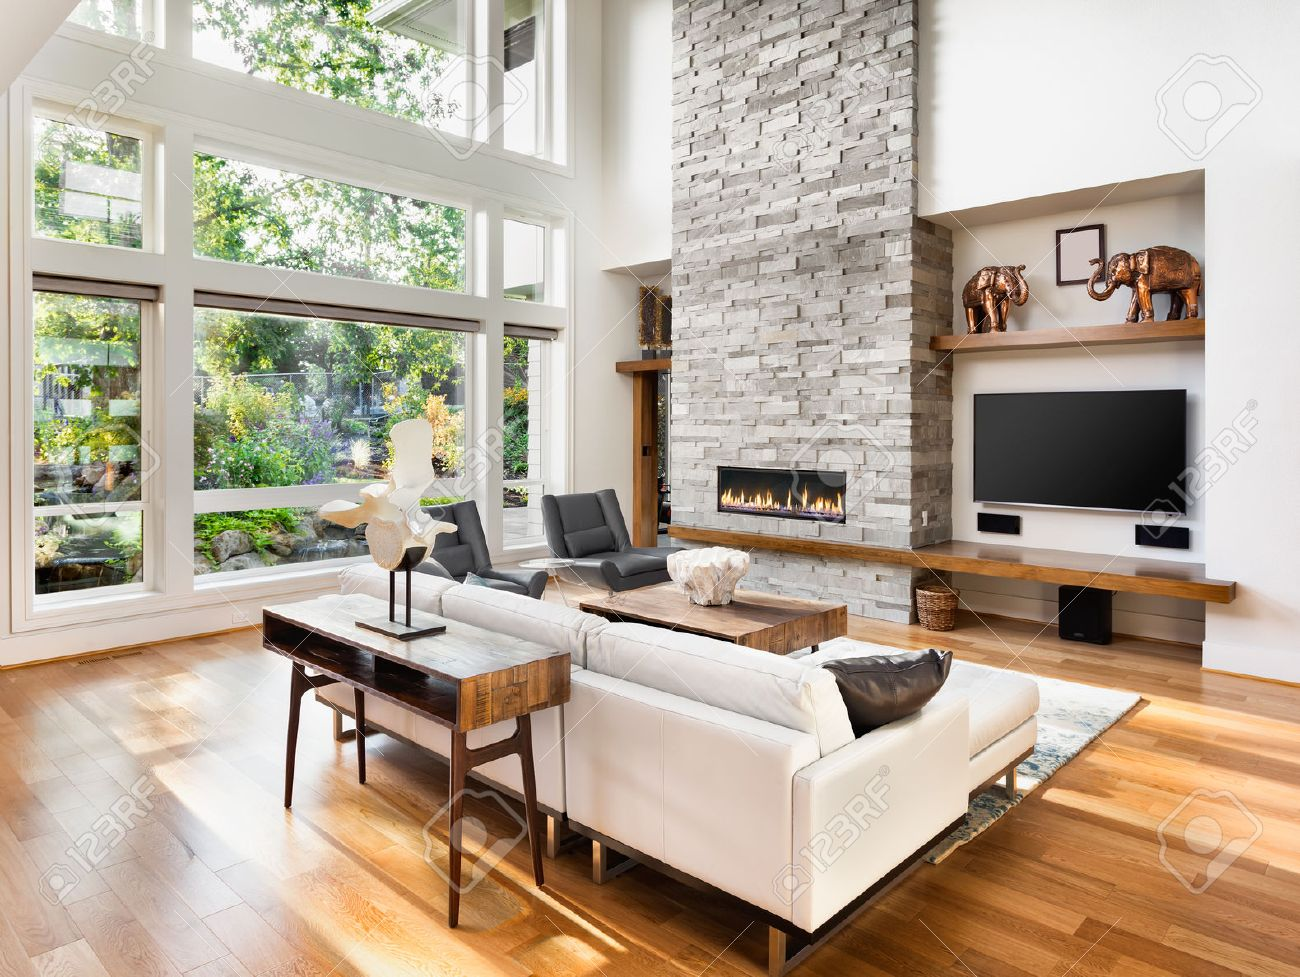 Living Room Interior With Hardwood Floors And Fireplace In New Luxury Home Stock